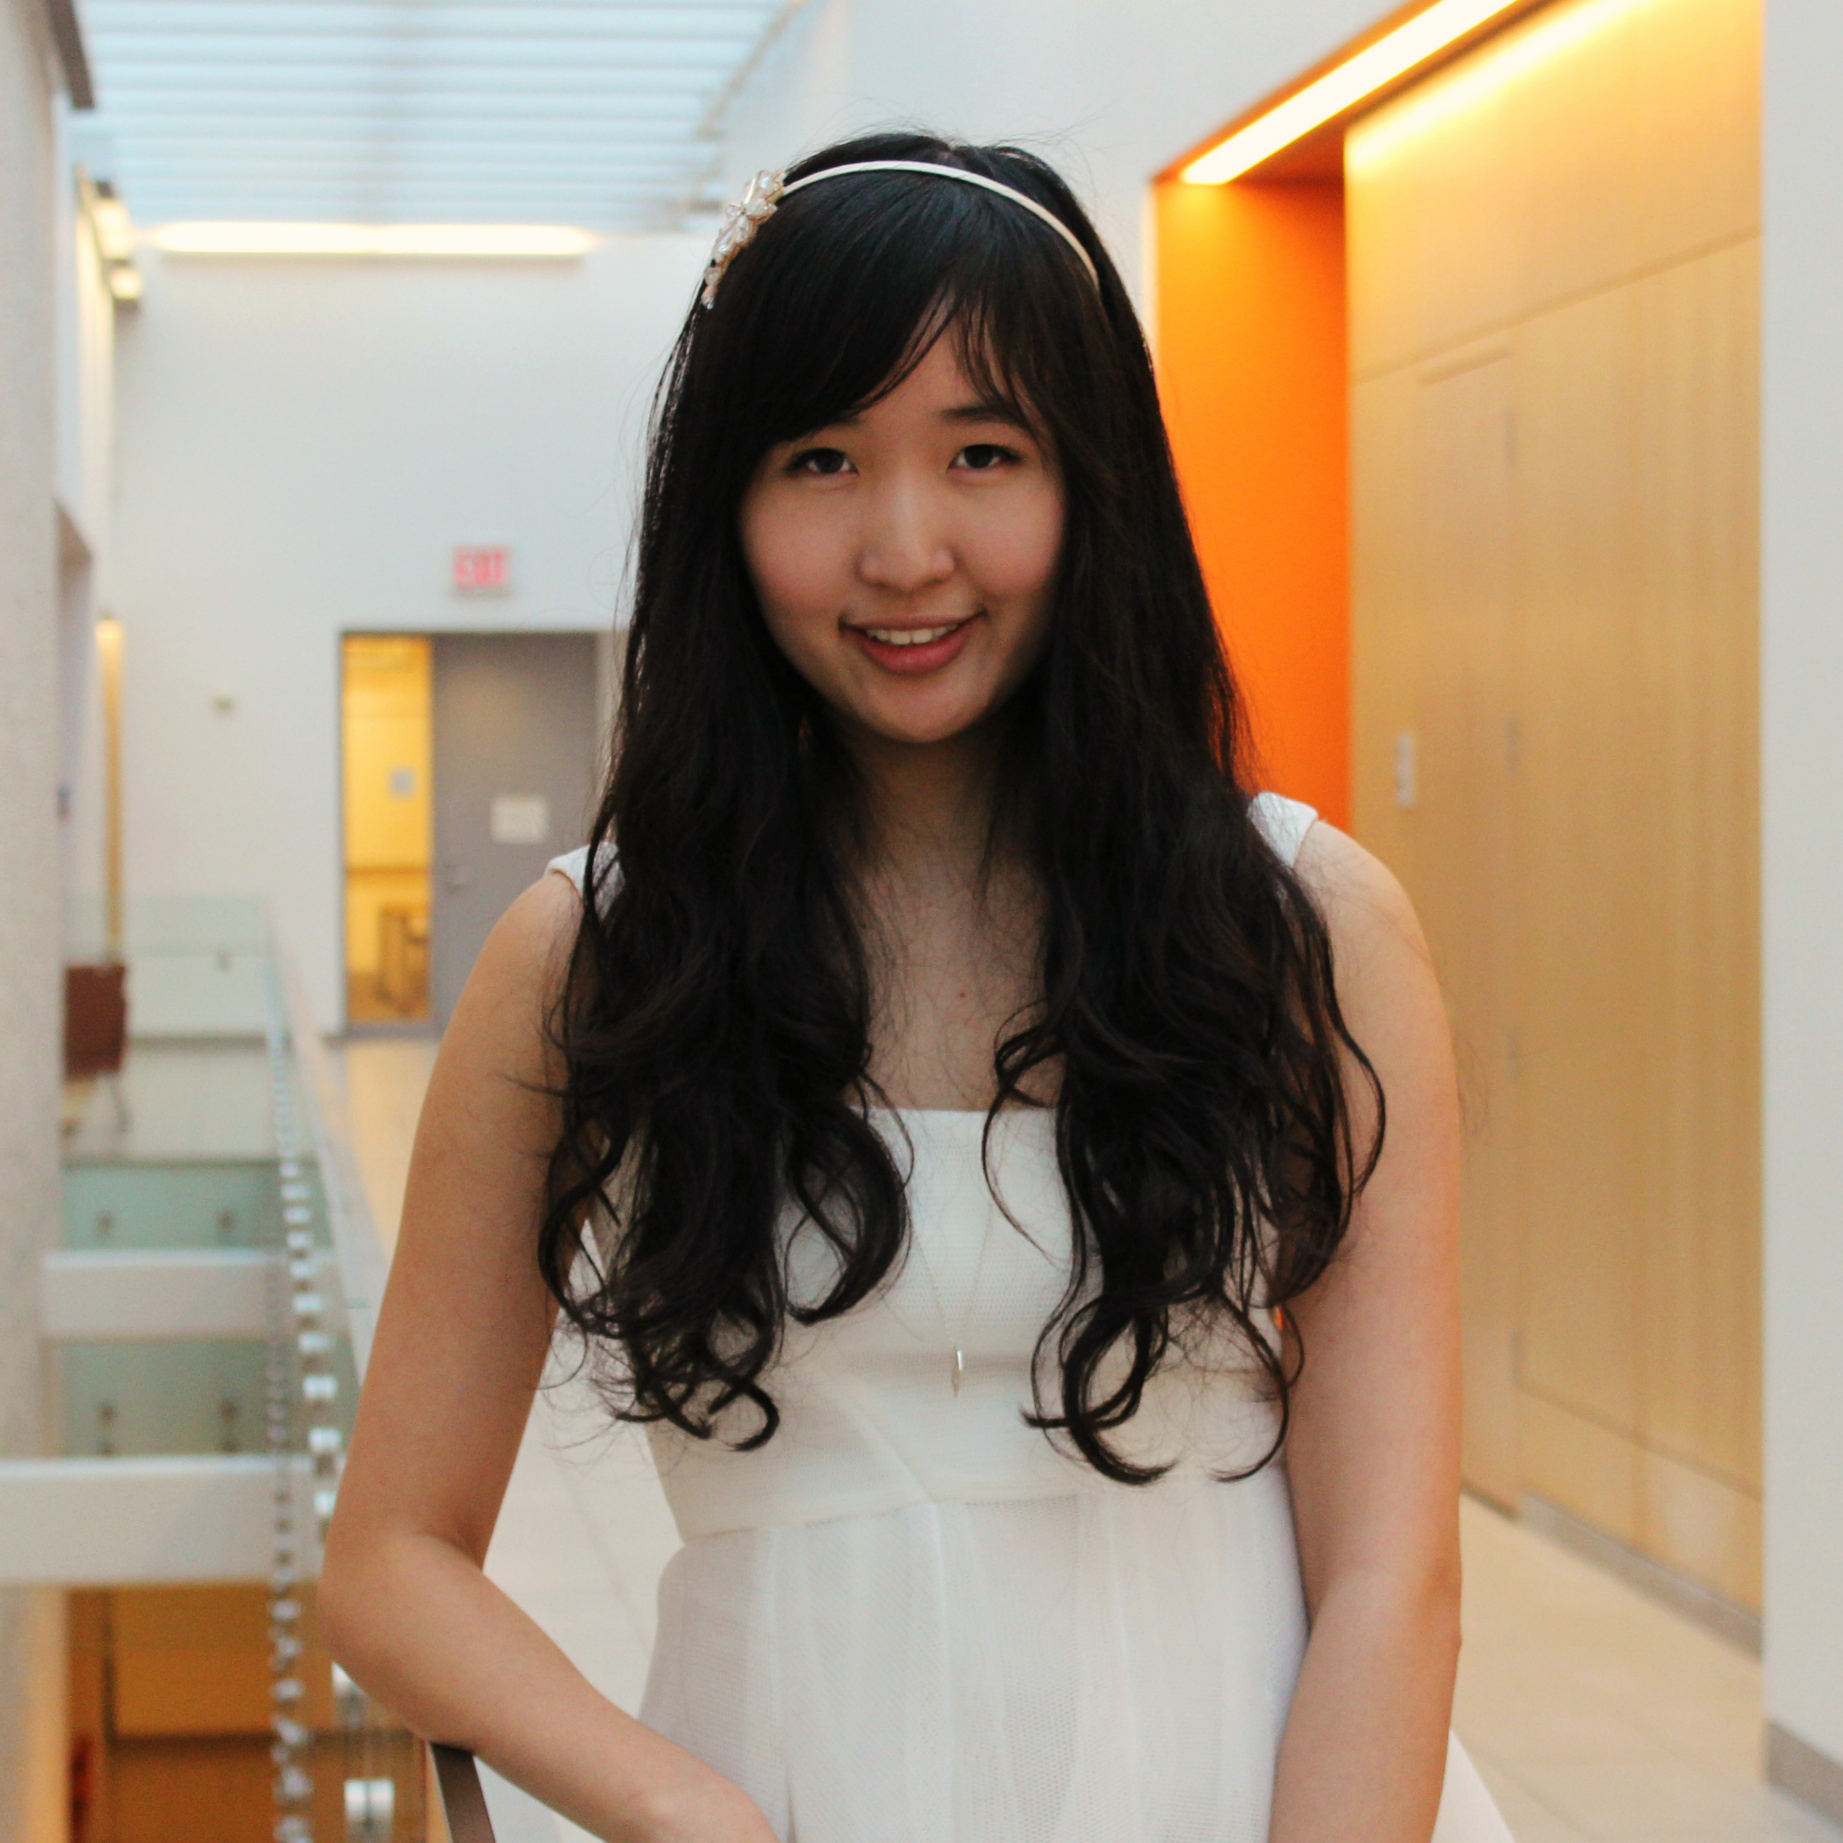 Rachel Xing - Internal Relations   Wen Yi (Rachel) Xing is a sophomore at NYU Stern studying real estate and finance. She loves patching needs with solutions and bringing people together. Outside of school, Rachel is involved with real estate intelligence, longevity projects, fundraising for real estate development projects, and serving in the programming committee of Flushing chamber of commerce, a non-profit for business development.